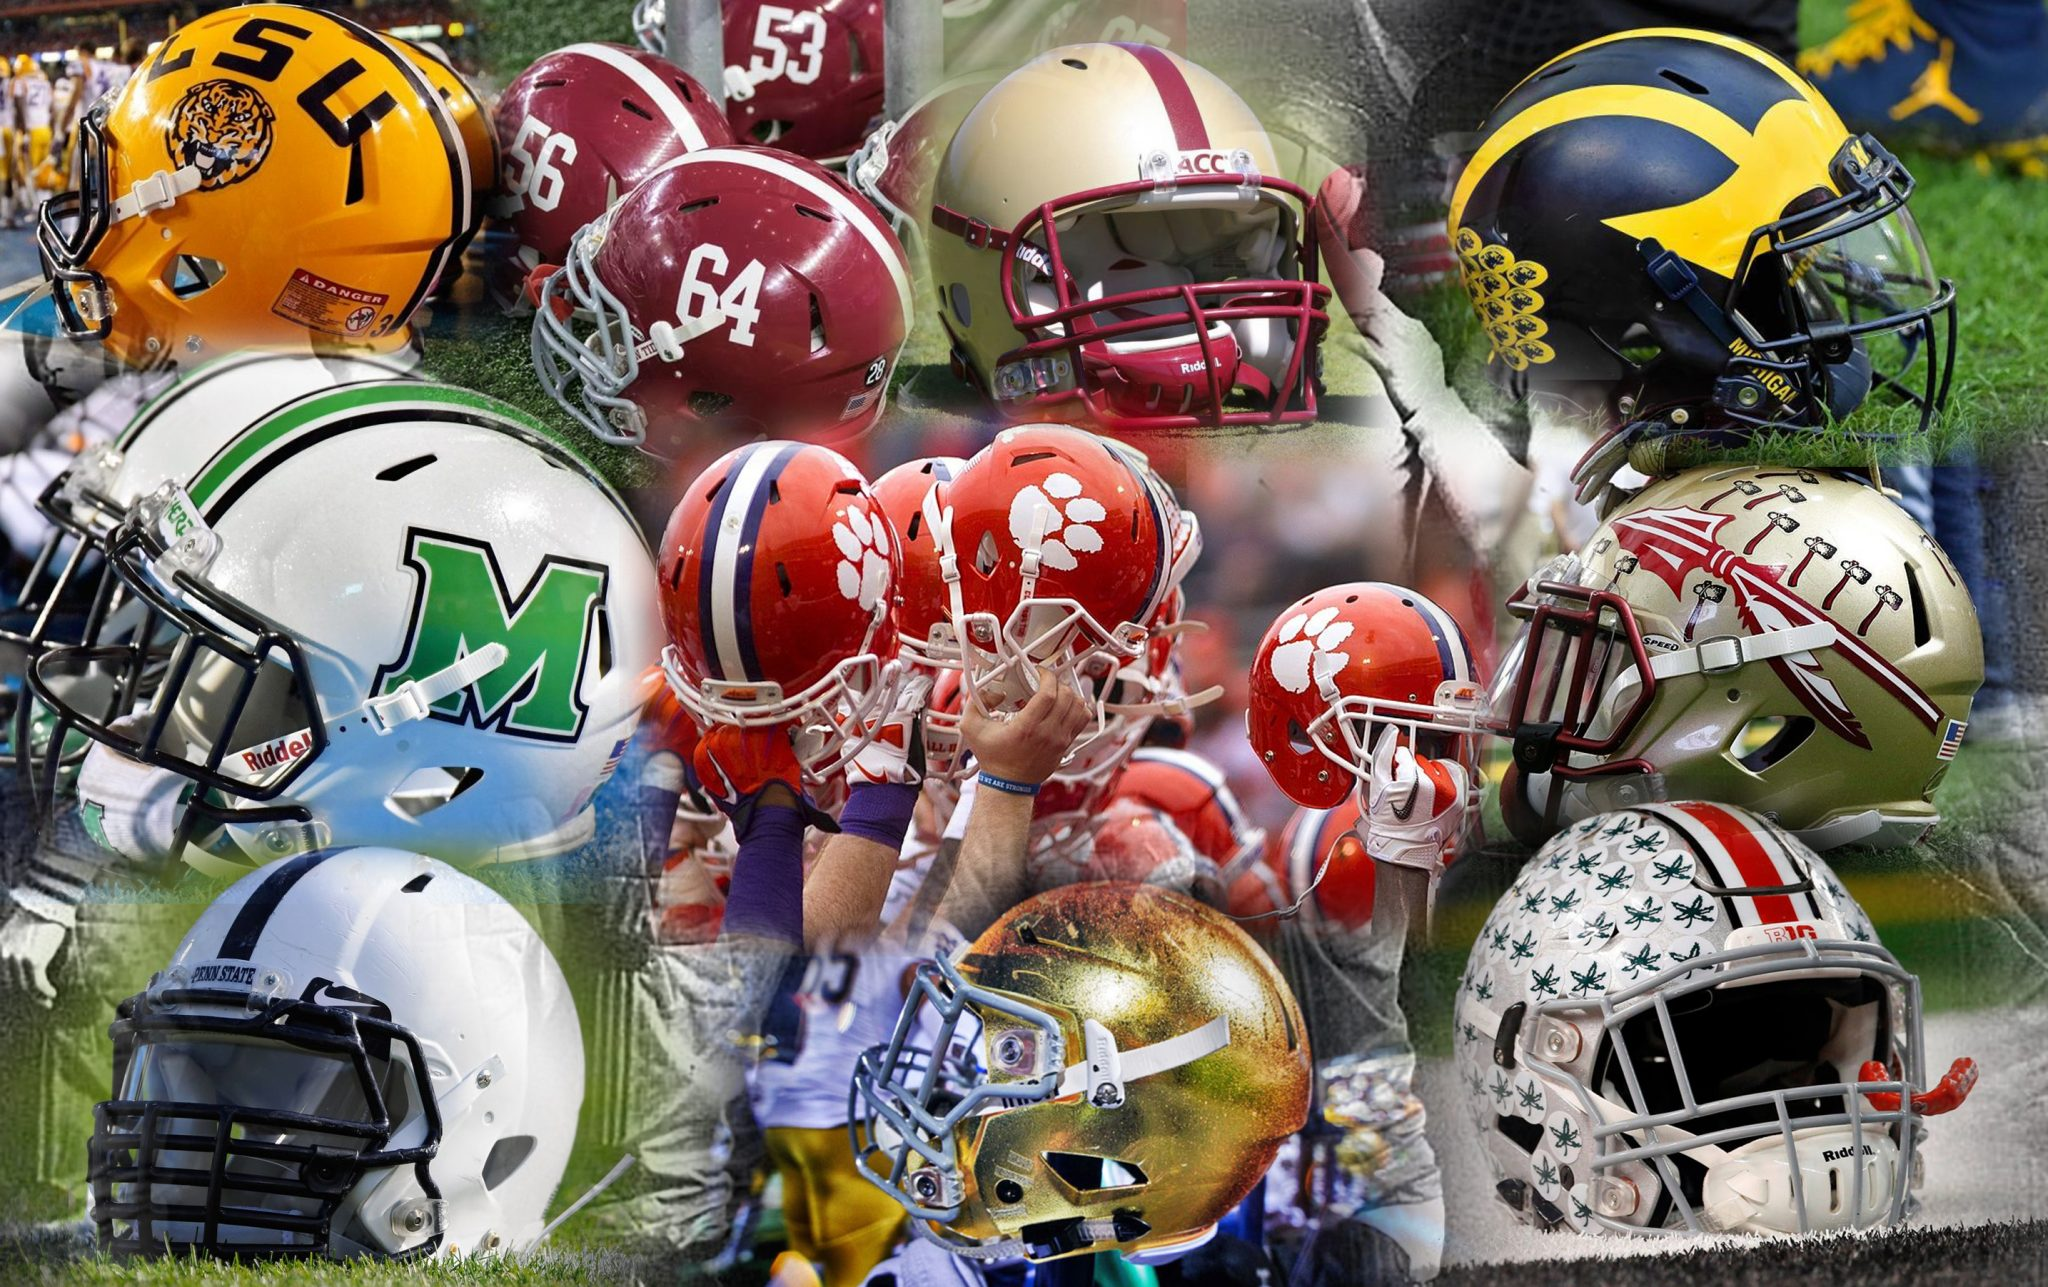 Top 10 Best Helmets In College Football